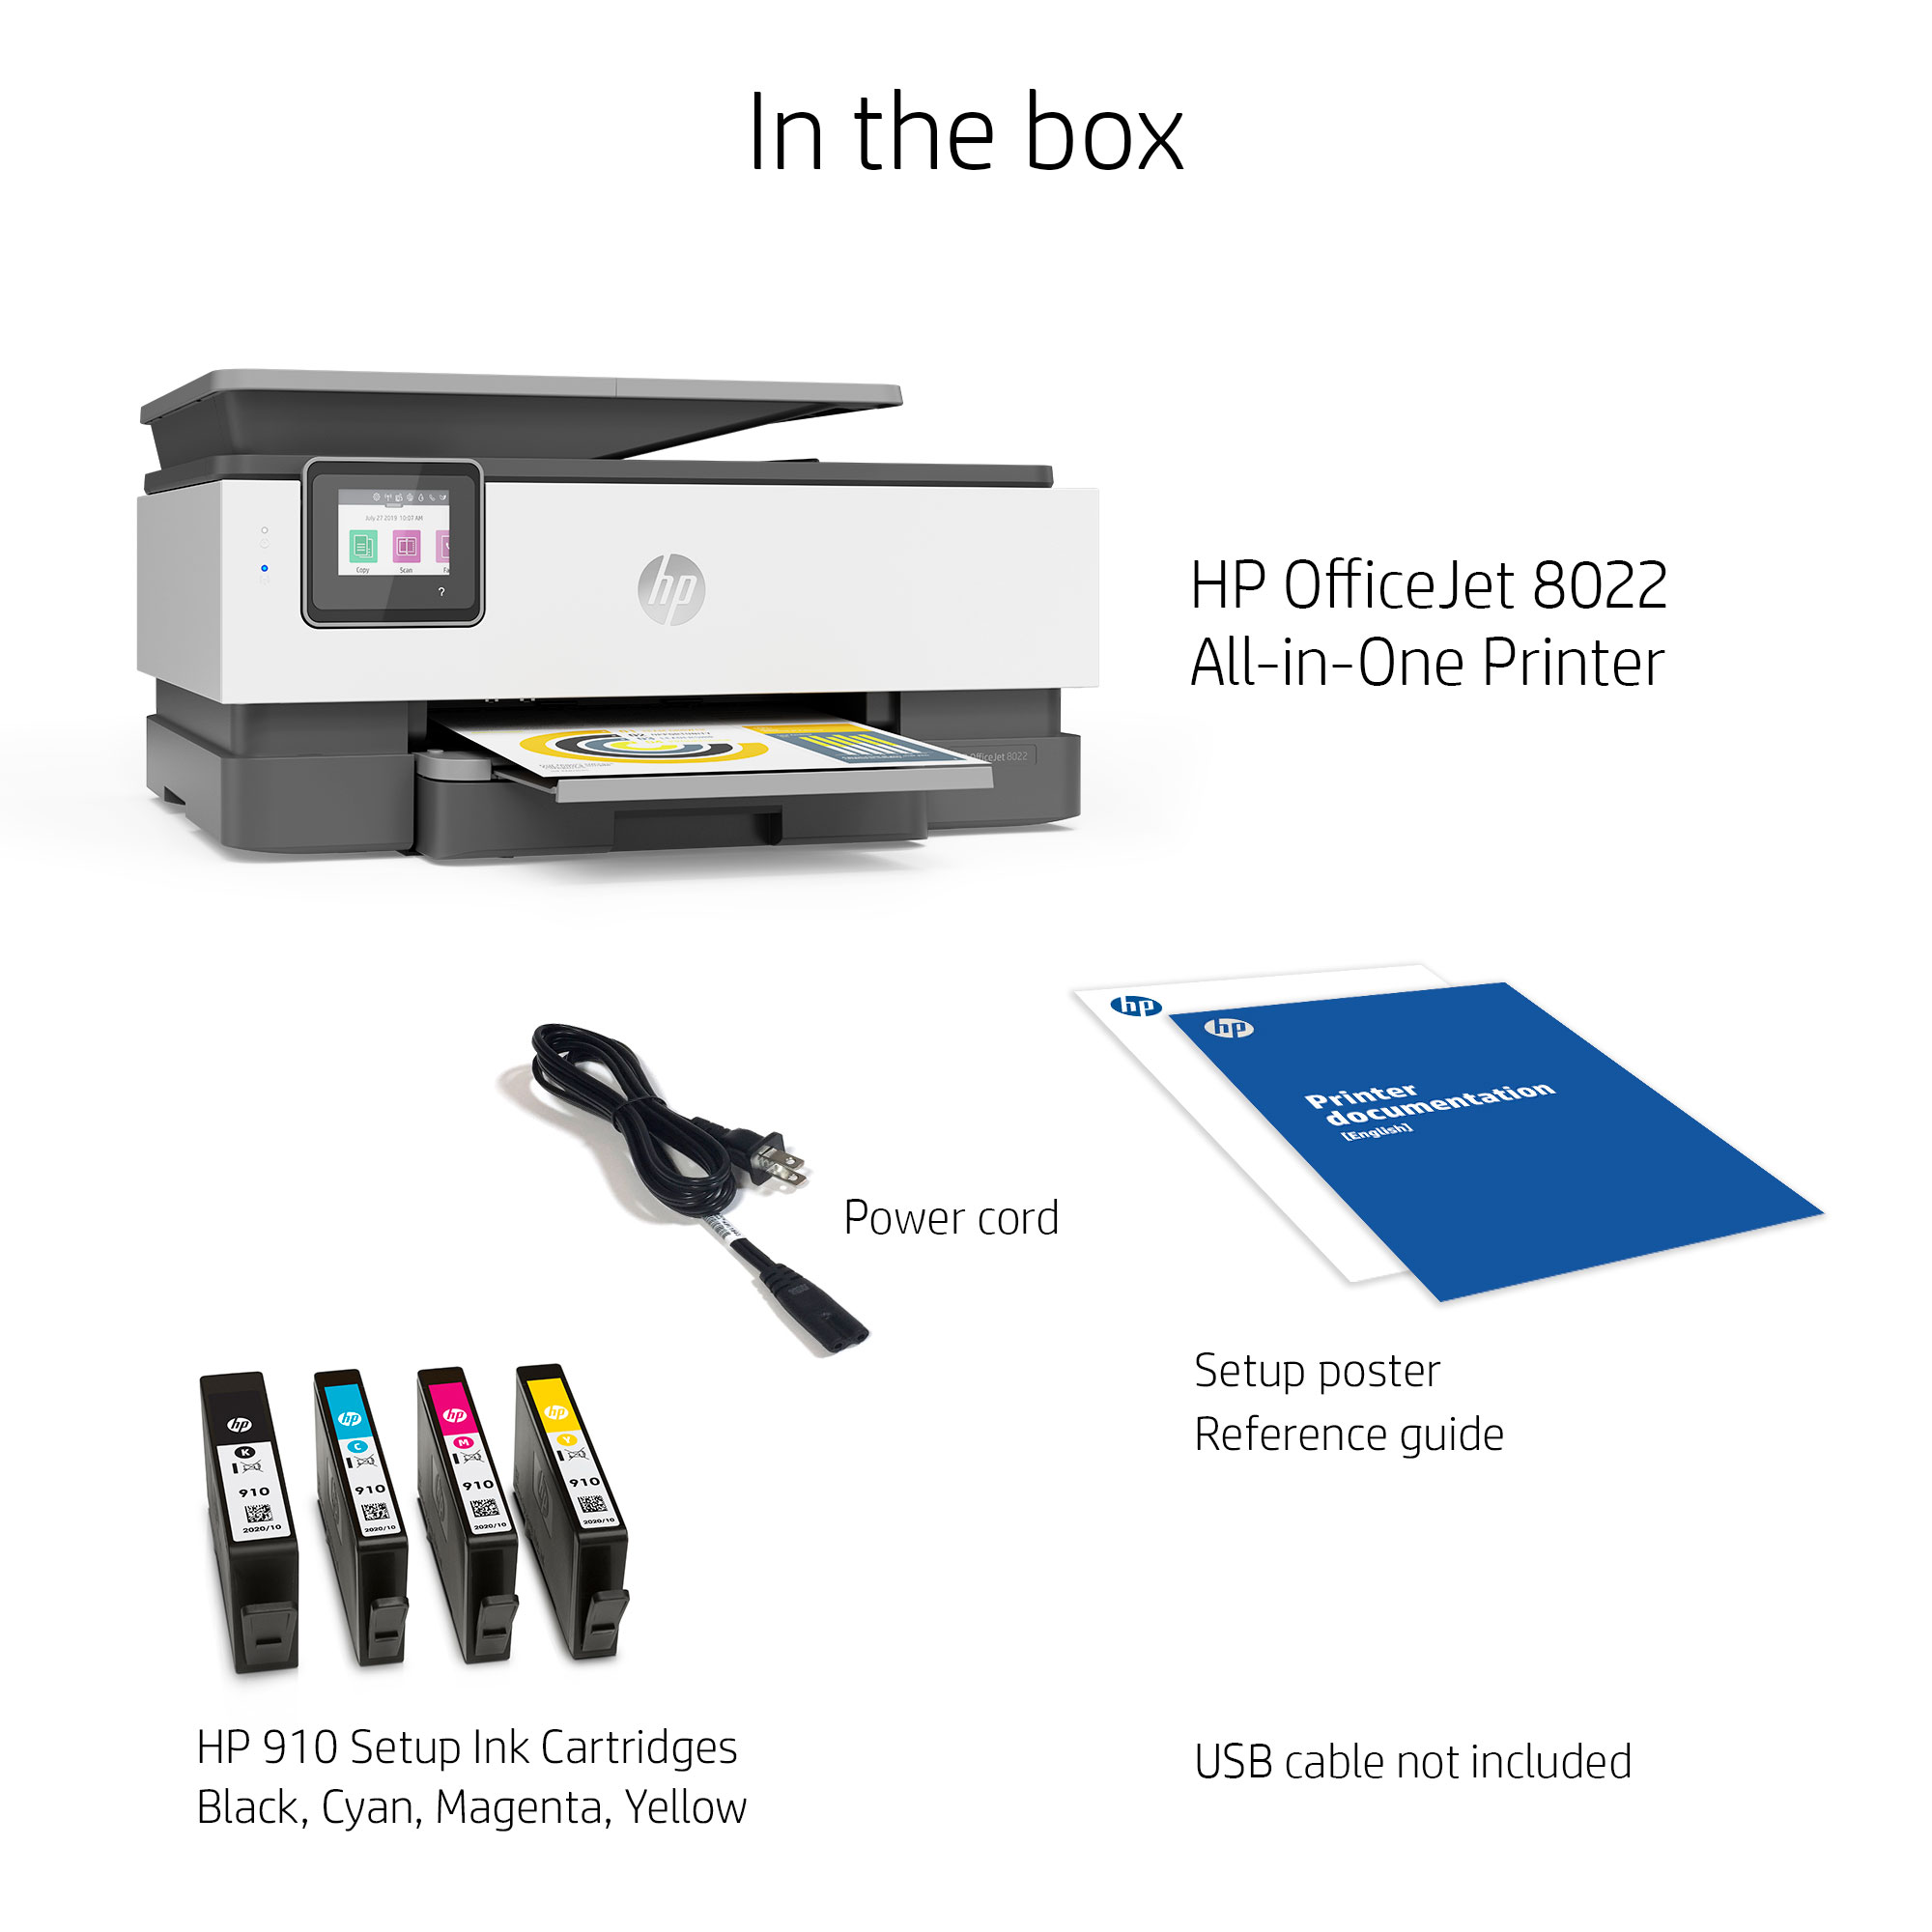 HP OfficeJet 8022 All-in-One Wireless Printer, with Smart